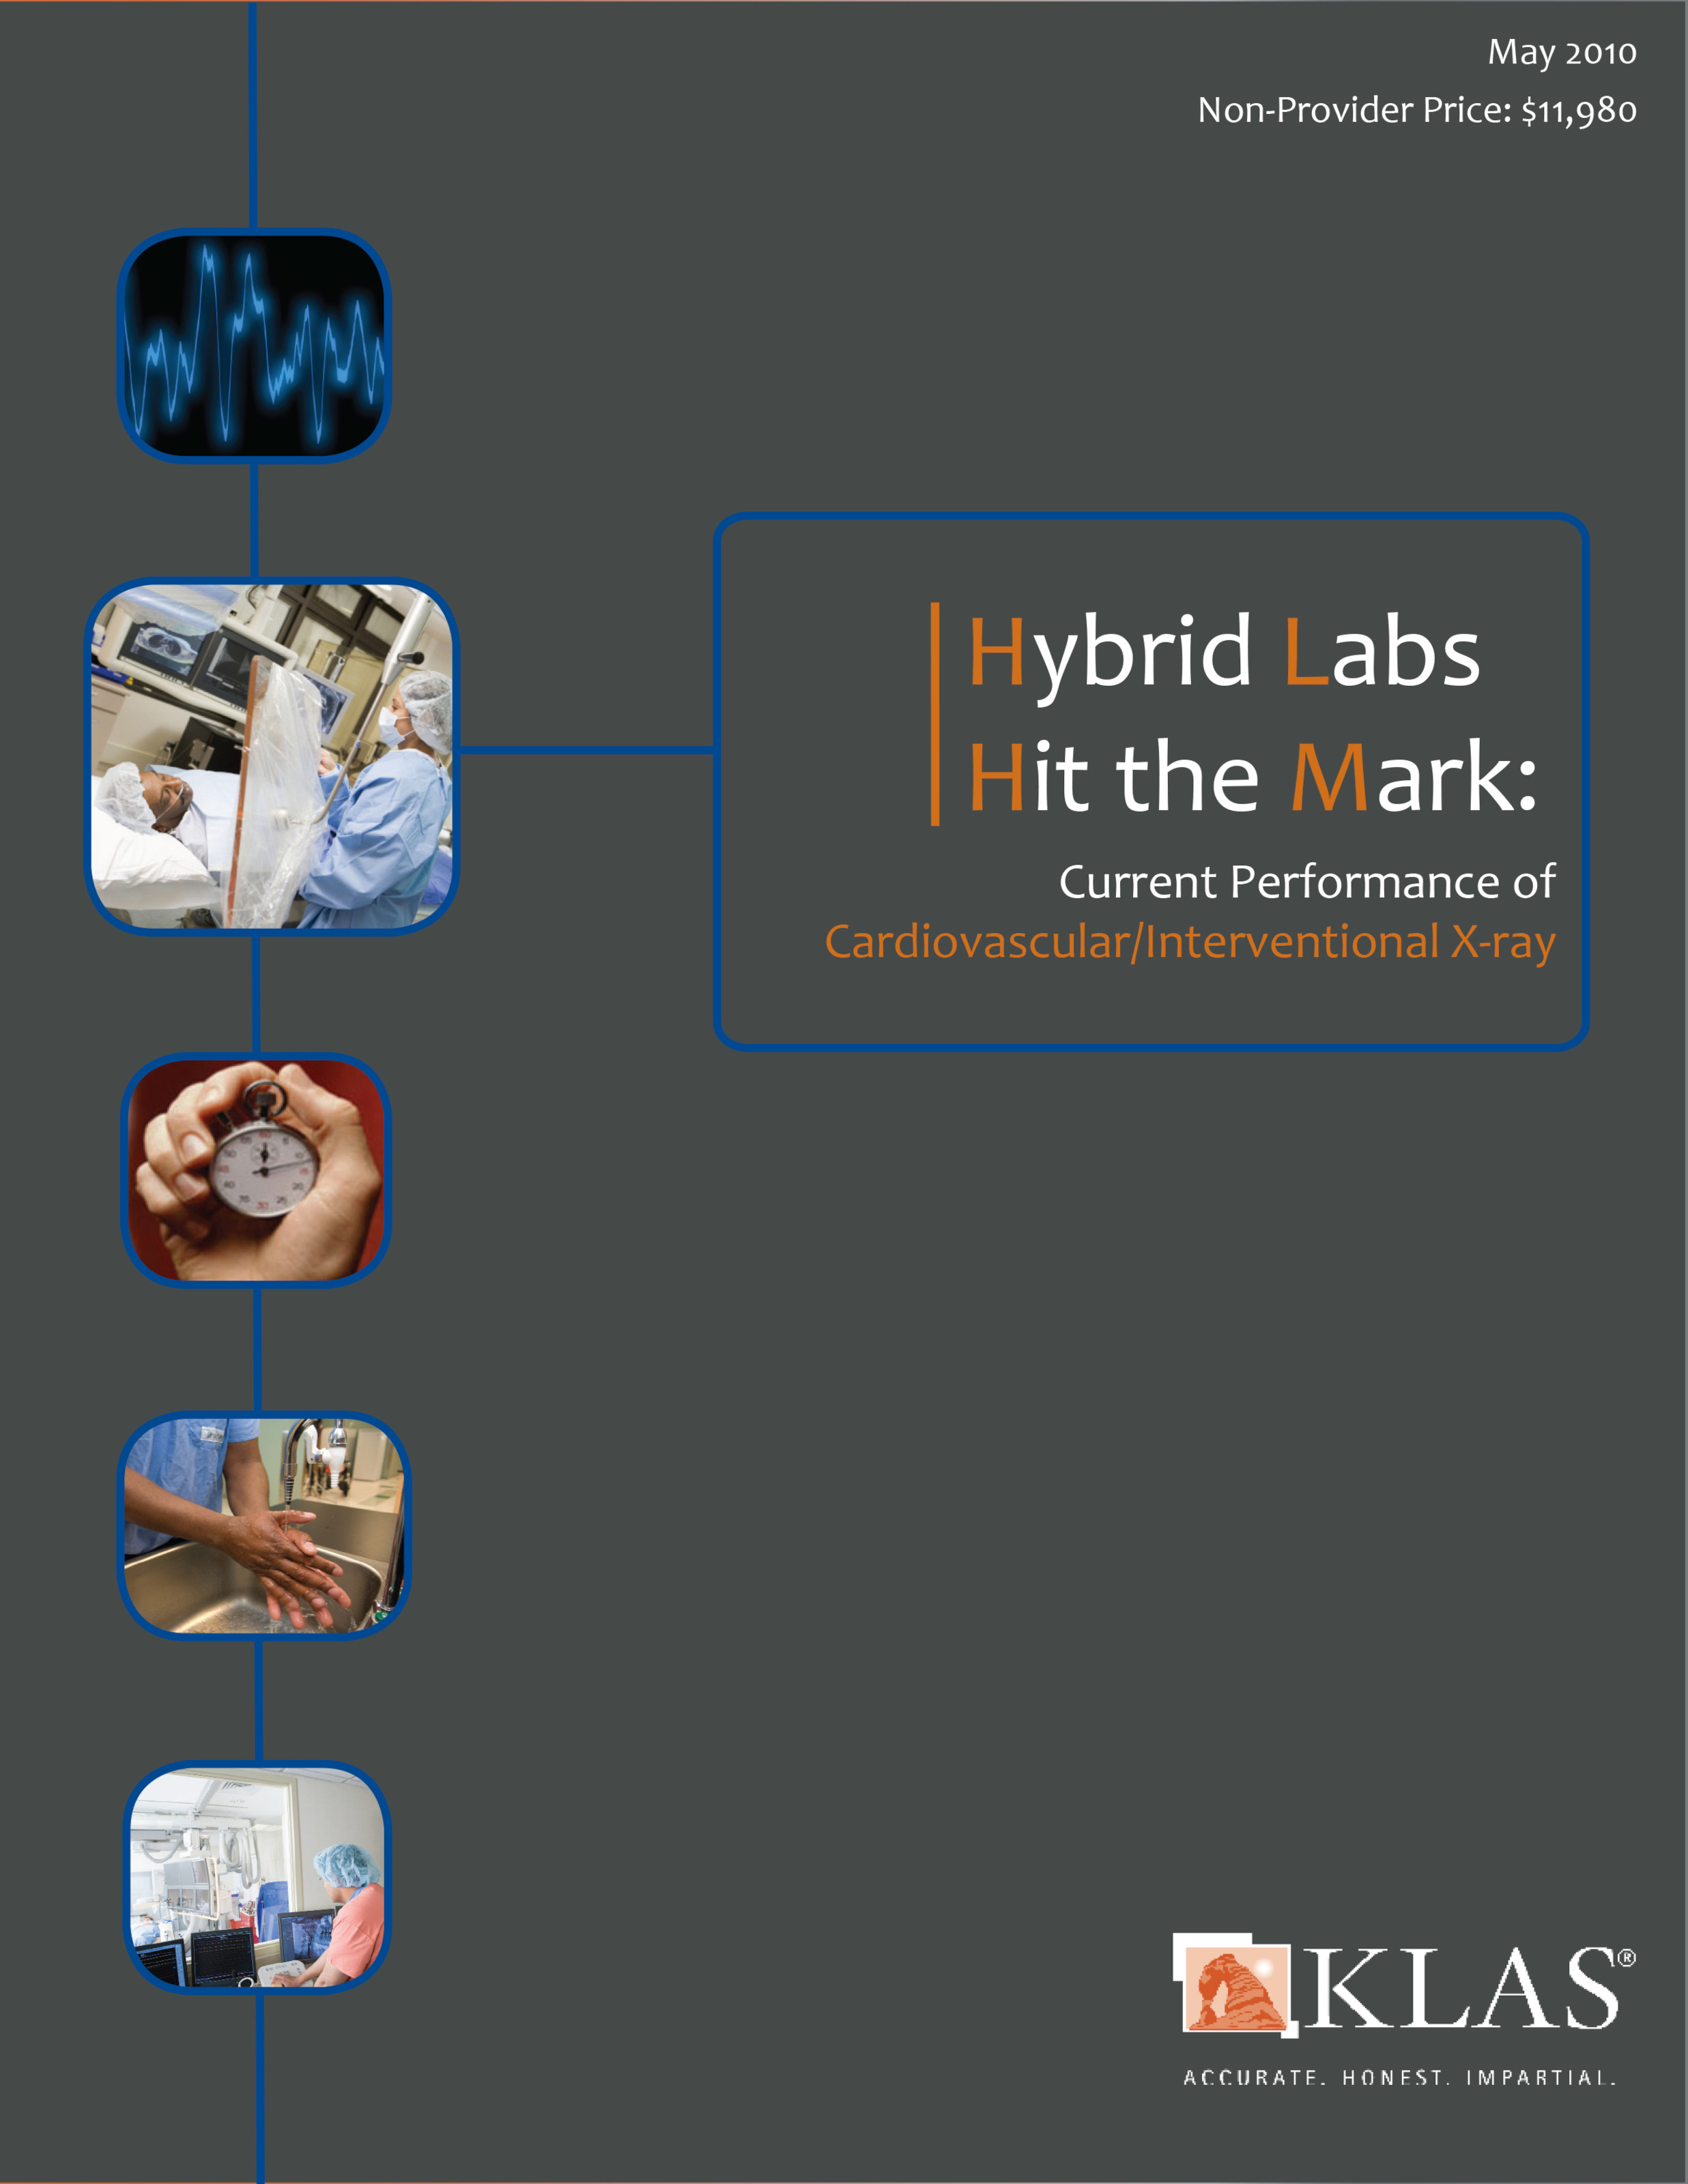 Hybrid Labs Hit the Mark